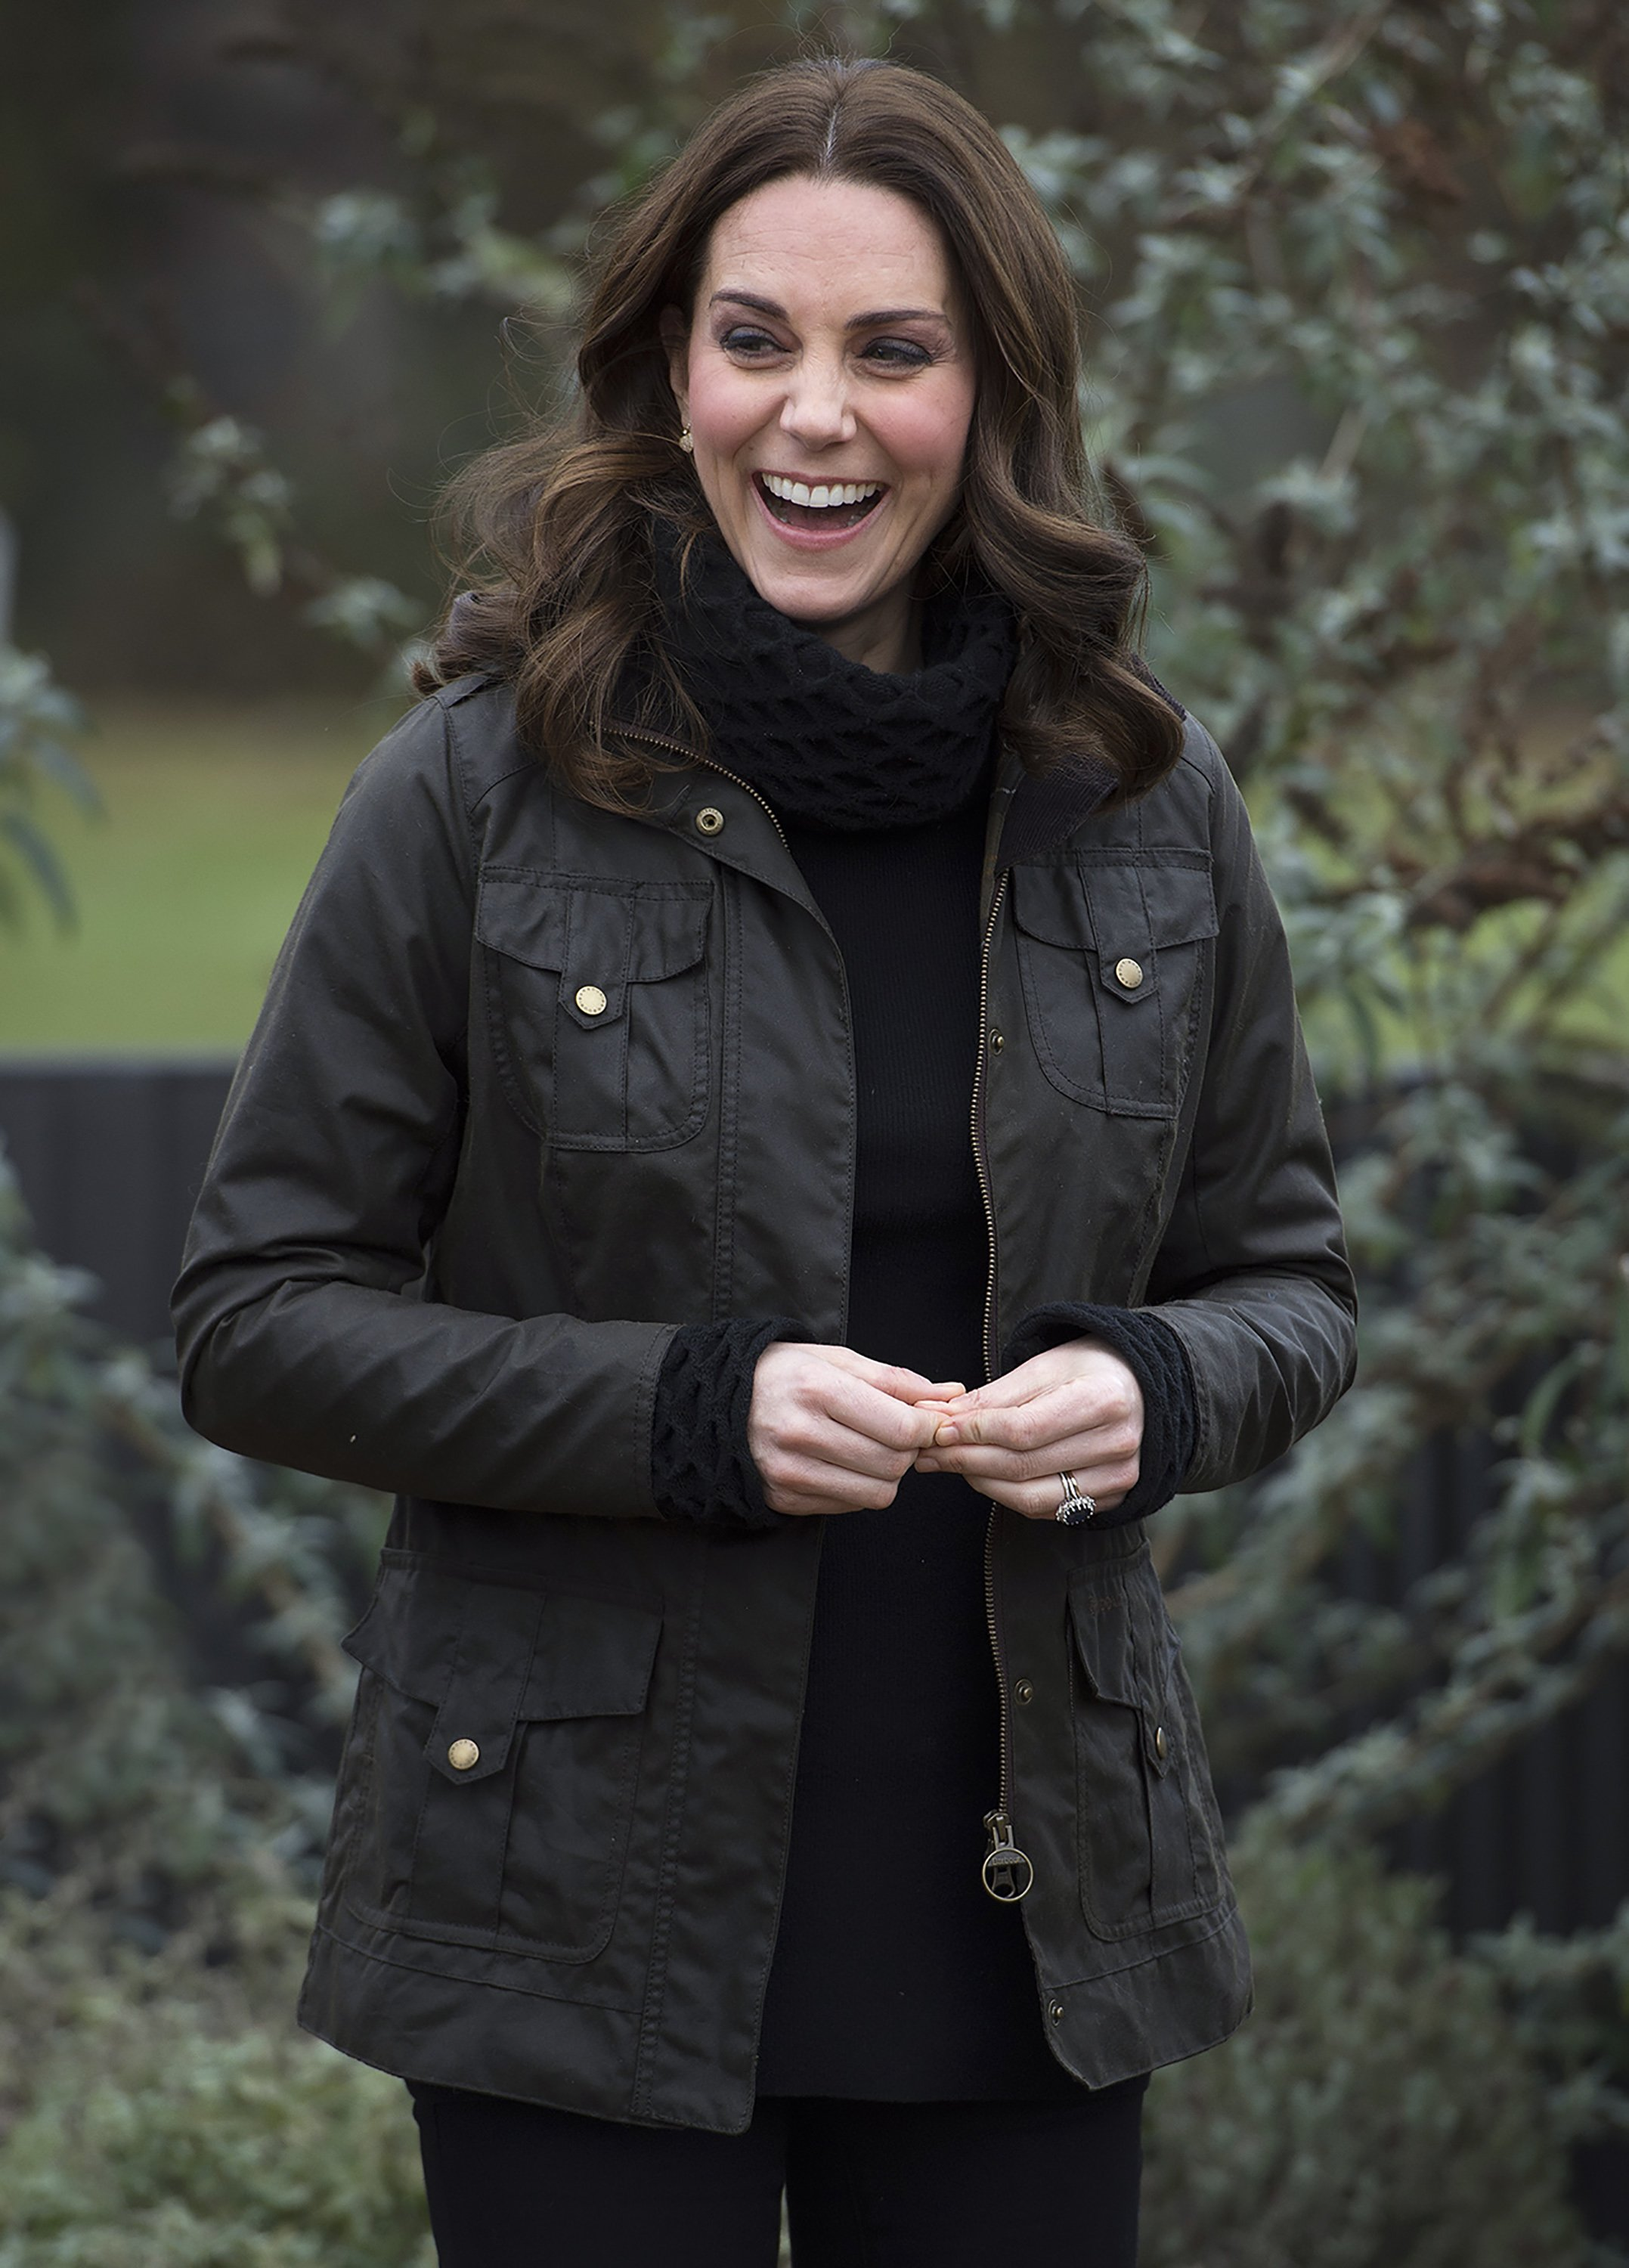 The Duchess of Cambridge visits Robin Hood Primary School to celebrate their work with the Royal Horticultural Society (RHS) Campaign for School Gardening in London, UK, on the 29th November 2017.  Picture by Eddie Mulholland/WPA-Pool. 29 Nov 2017 Pictured: Catherine, Duchess of Cambridge, Kate Middleton., Image: 356471546, License: Rights-managed, Restrictions: NO United Kingdom, Model Release: no, Credit line: Profimedia, Mega Agency